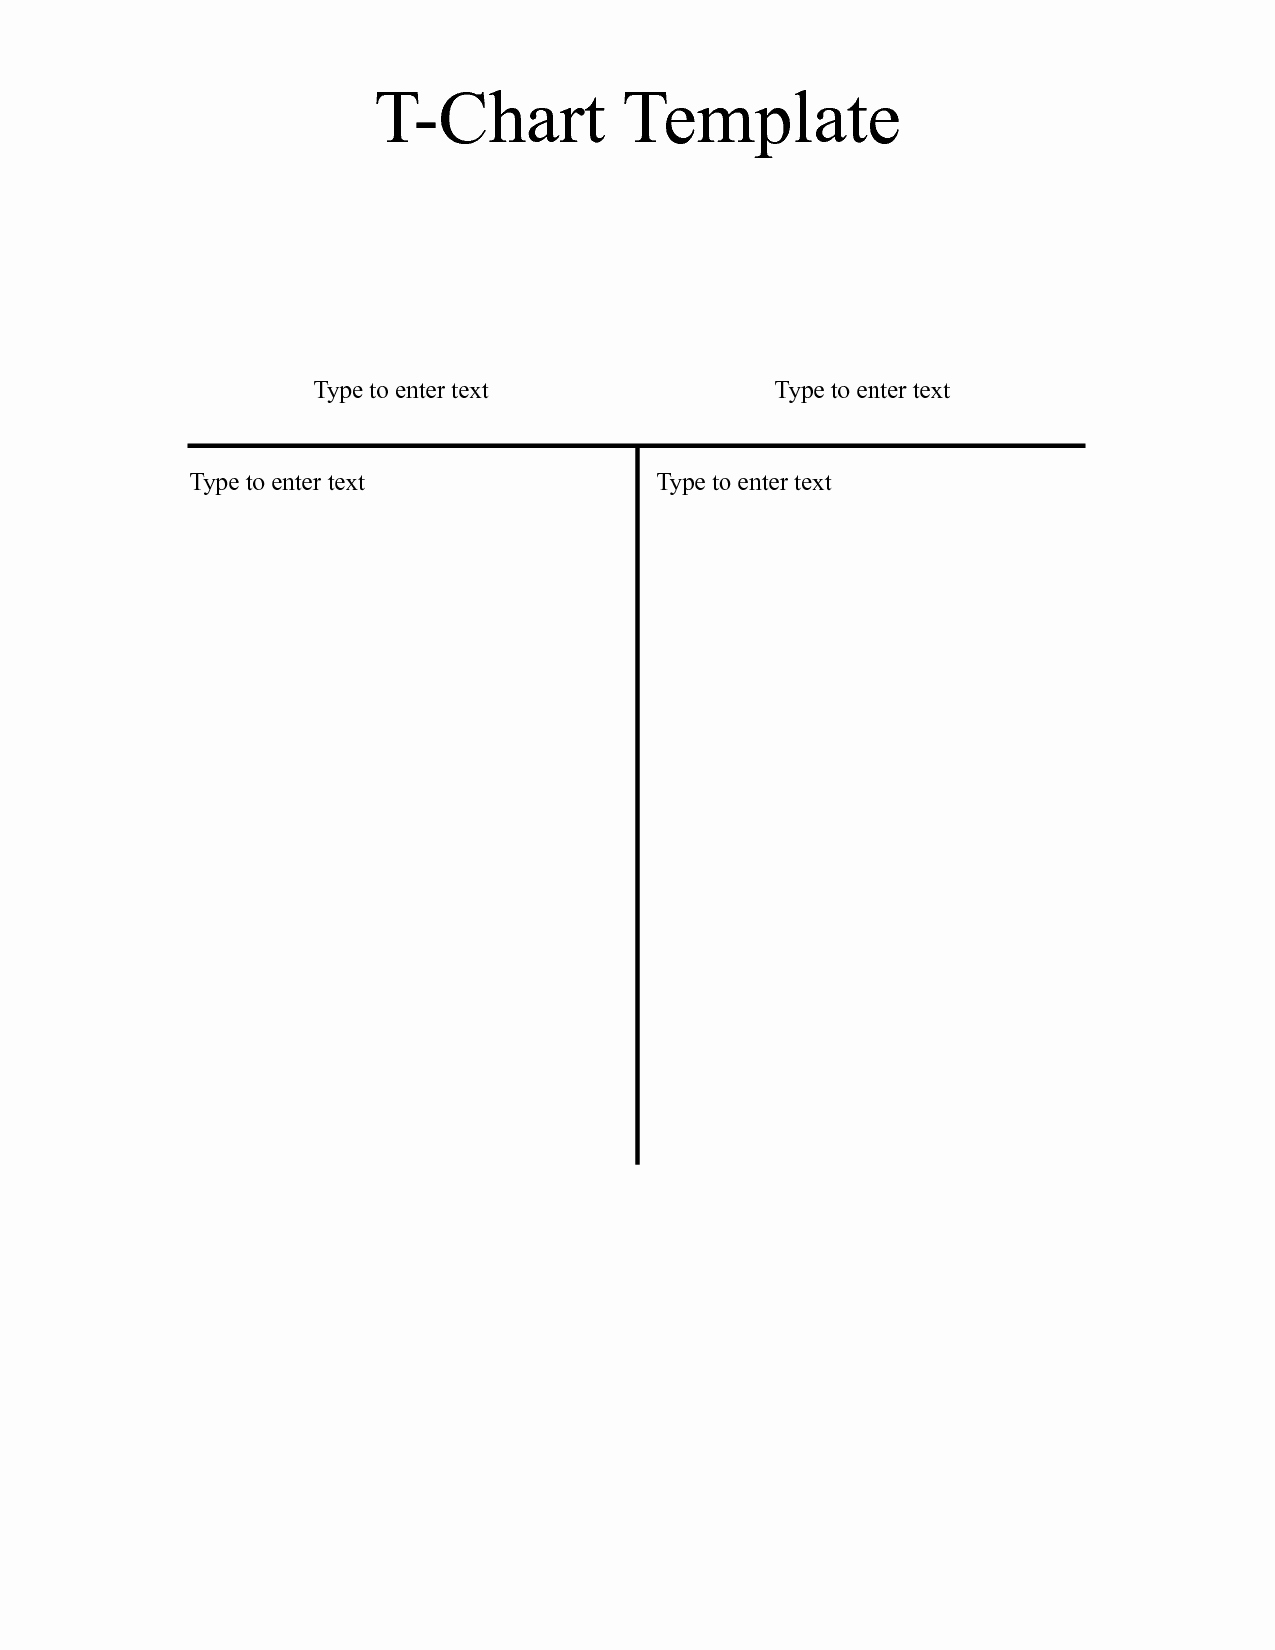 T Chart Template Word Beautiful T Chart Template